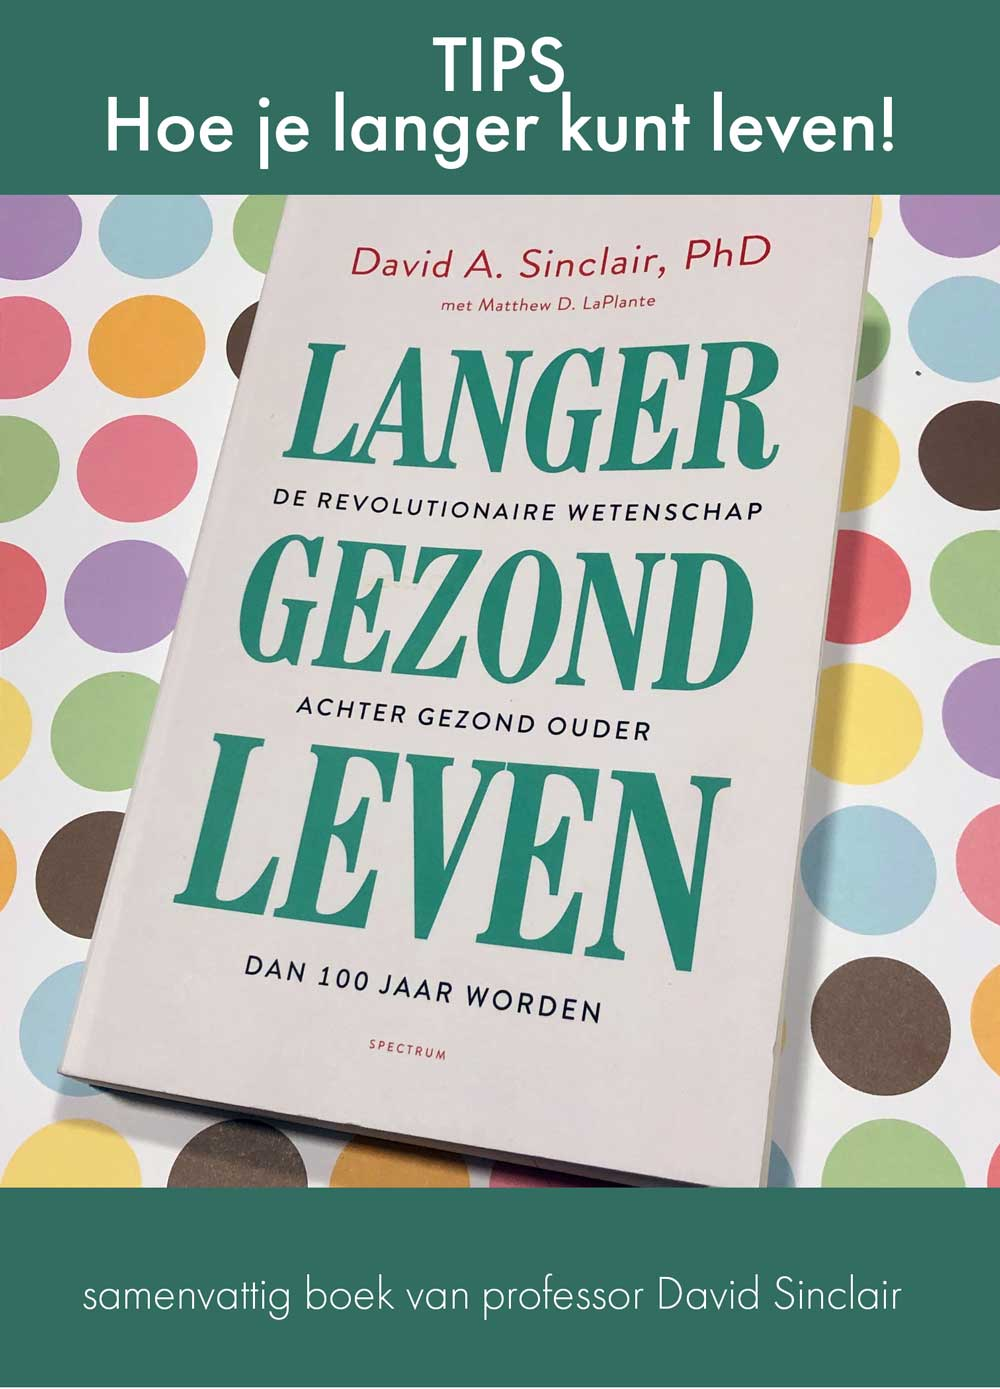 Tips om langer te leven van professior David Sinclair